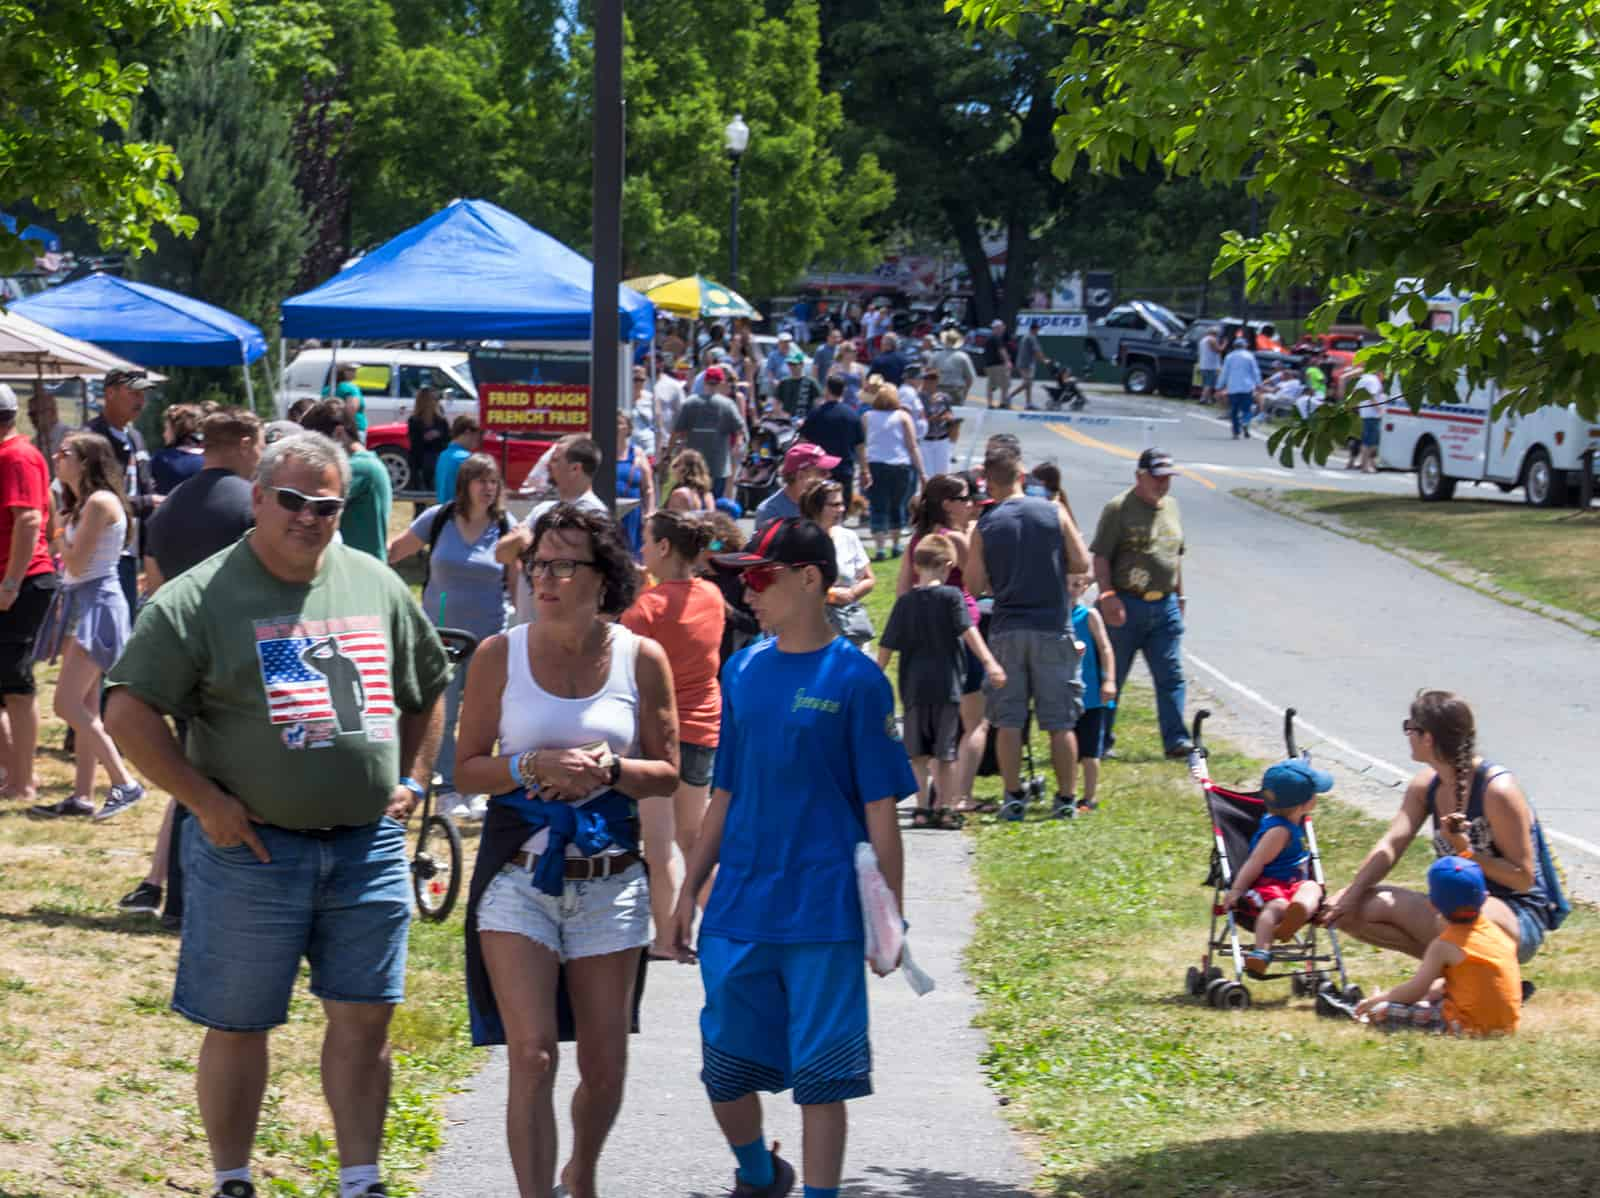 2016 Cars of Summer - Car Show Crowds - July 4th Weekend